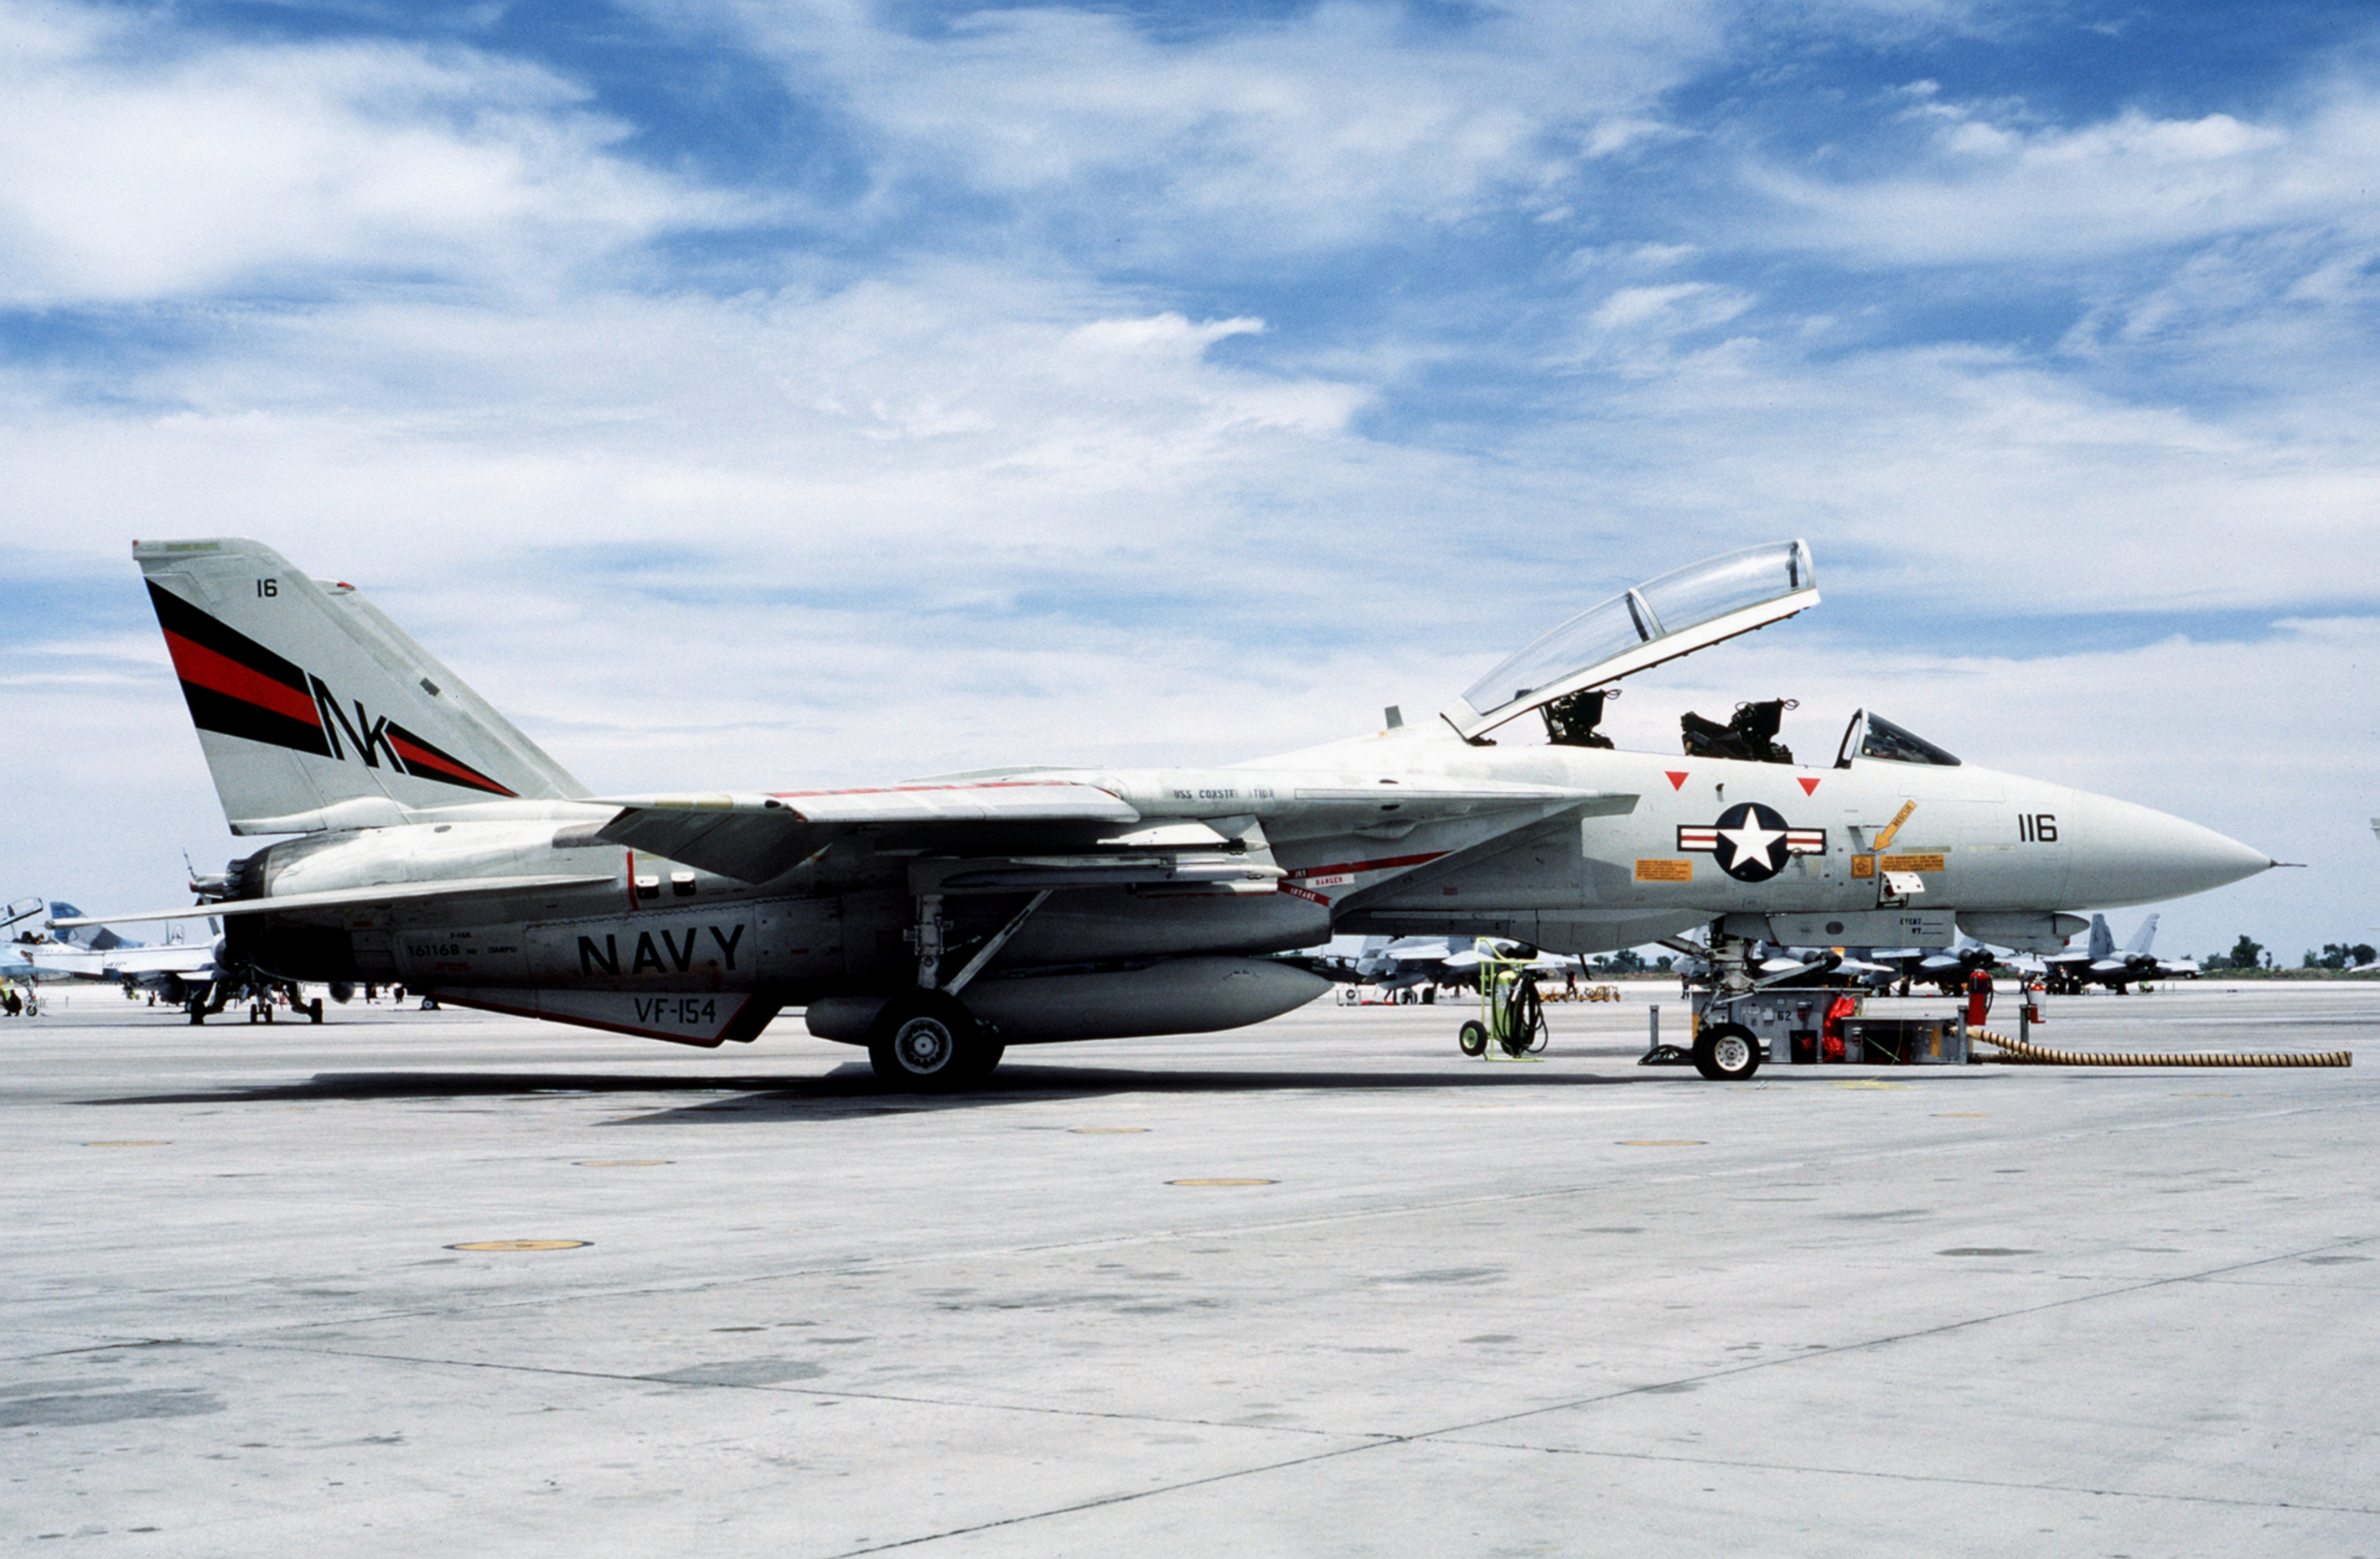 NV furthermore File F 14A VF 154 at NAS Fallon 1986 additionally Anything Lonely Nevadas Highway 50 together with M60 likewise 321163017149294765. on fallon nv